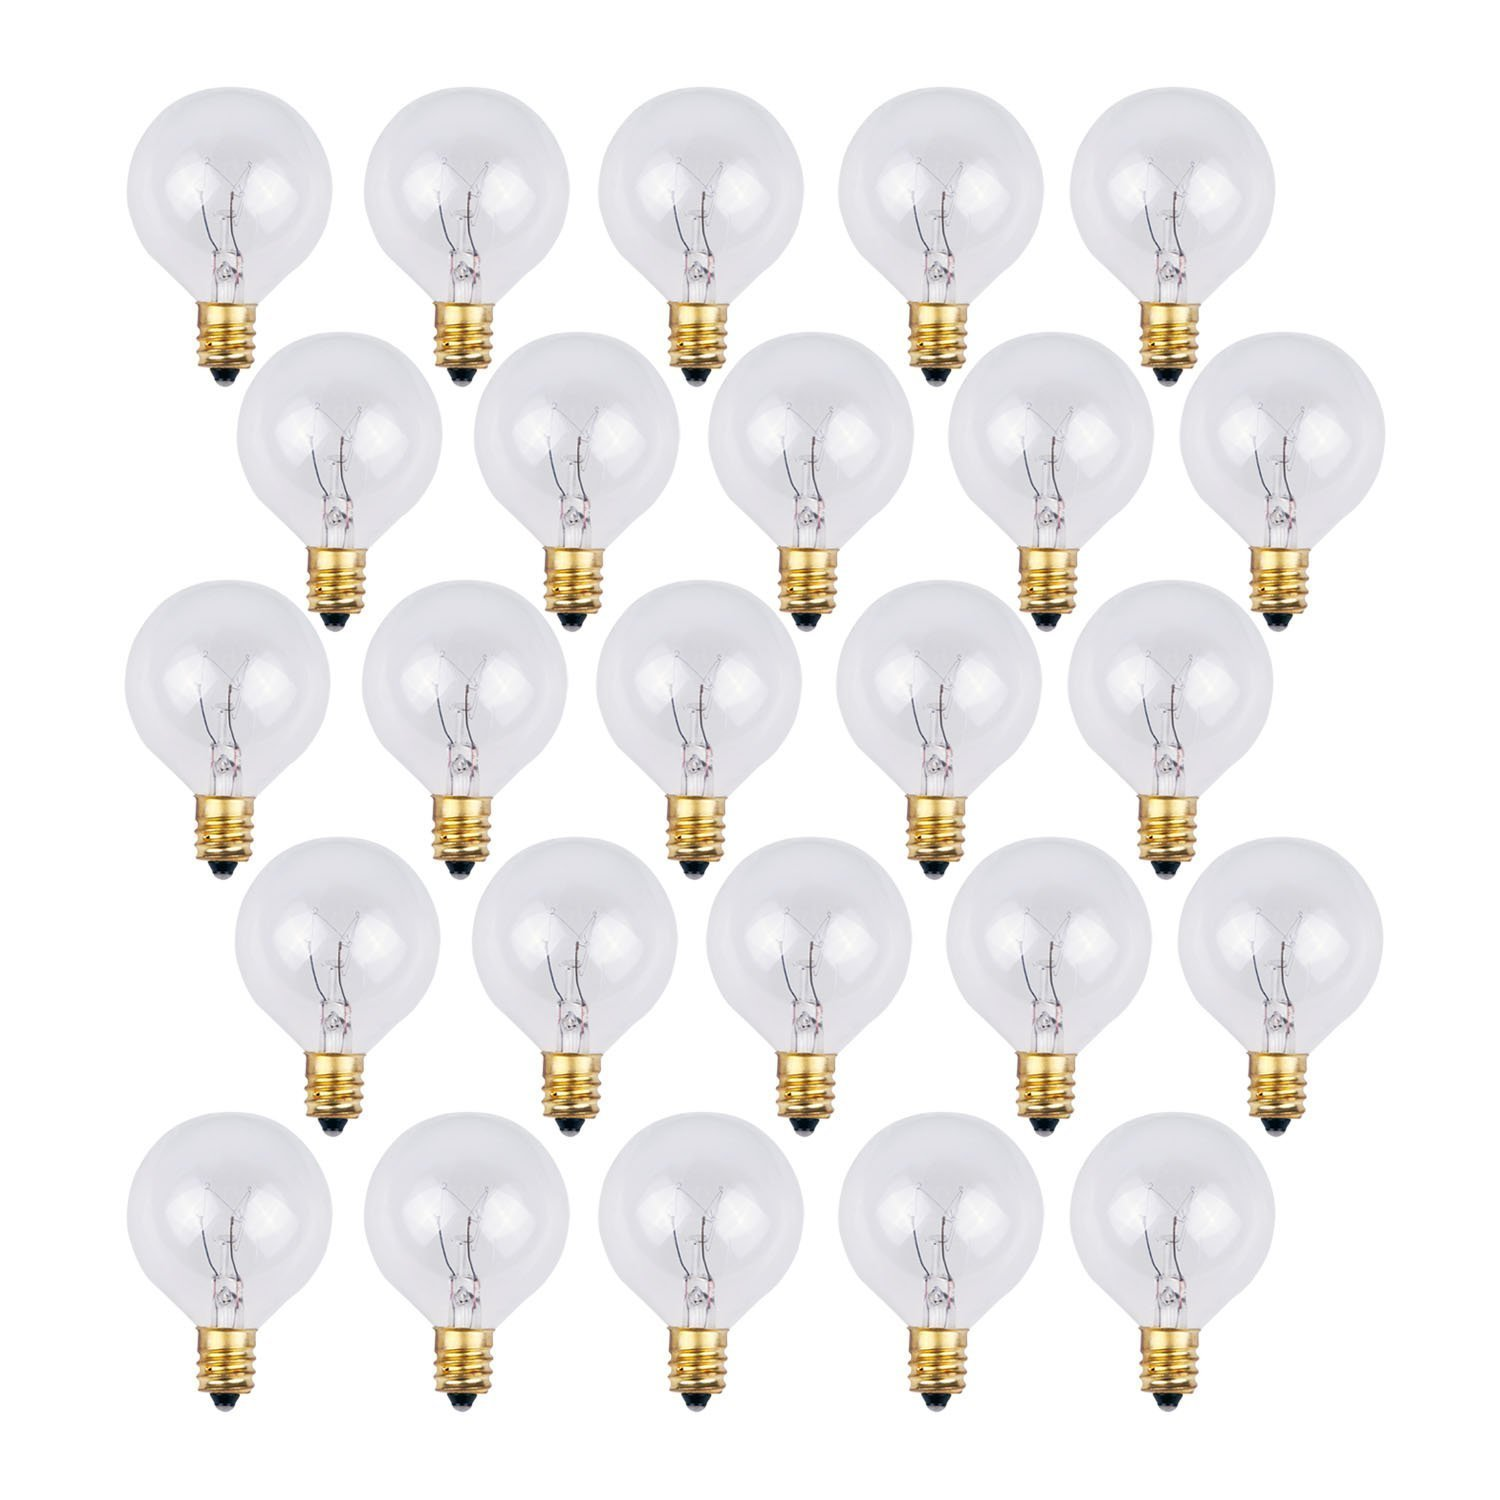 25 pack clear g40 globe light bulbs for patio string lights fits e12 and c7 base 5 watt g40 replacement bulbs for patio lights